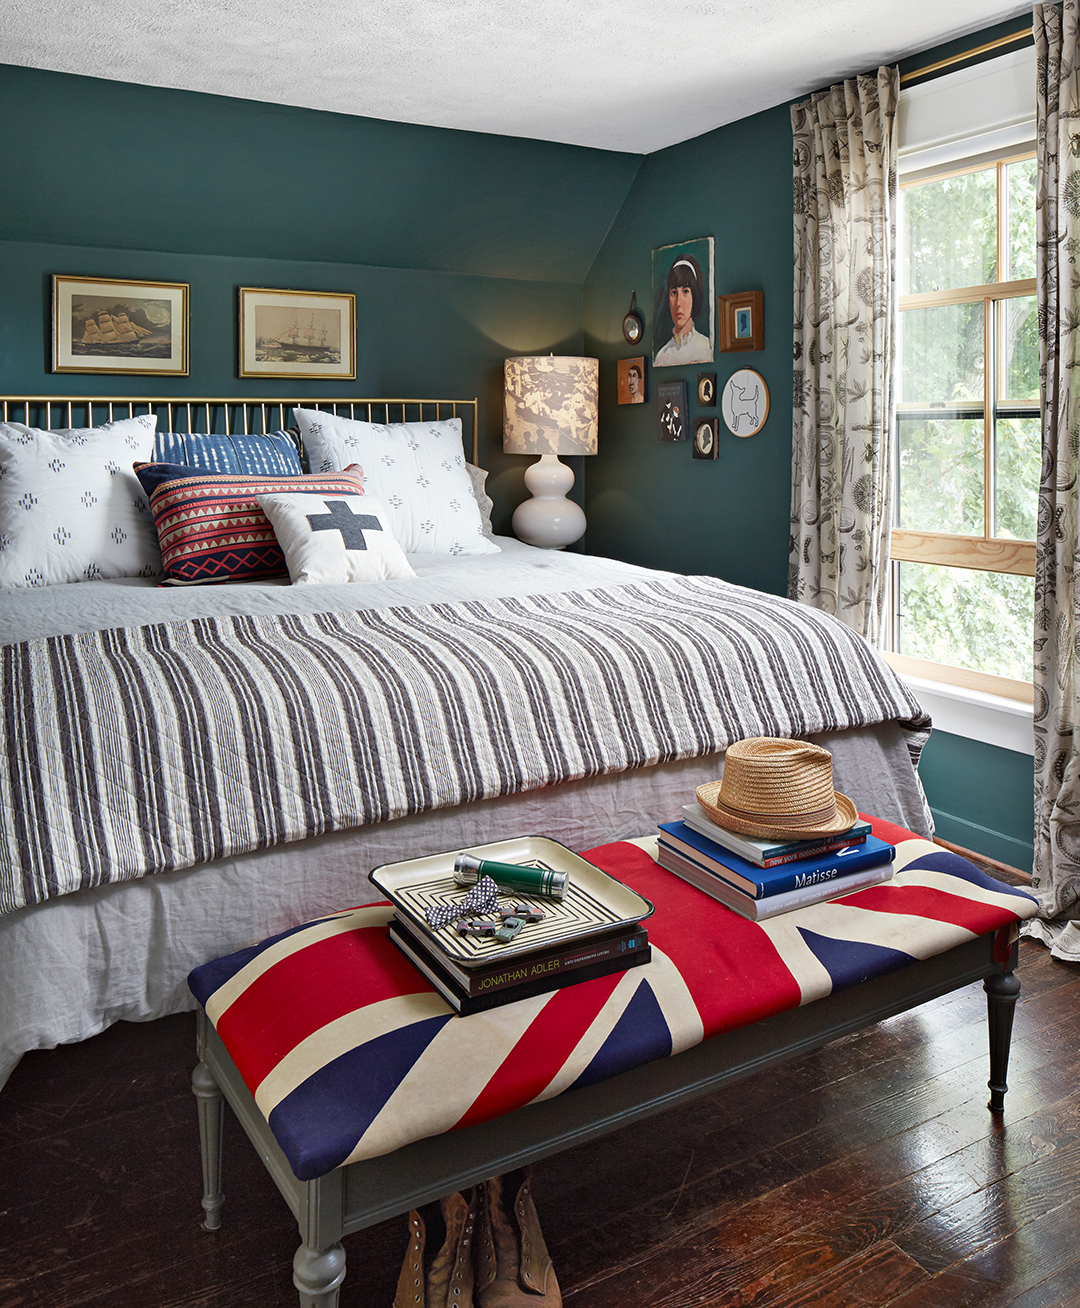 master bedroom with décor and wall art